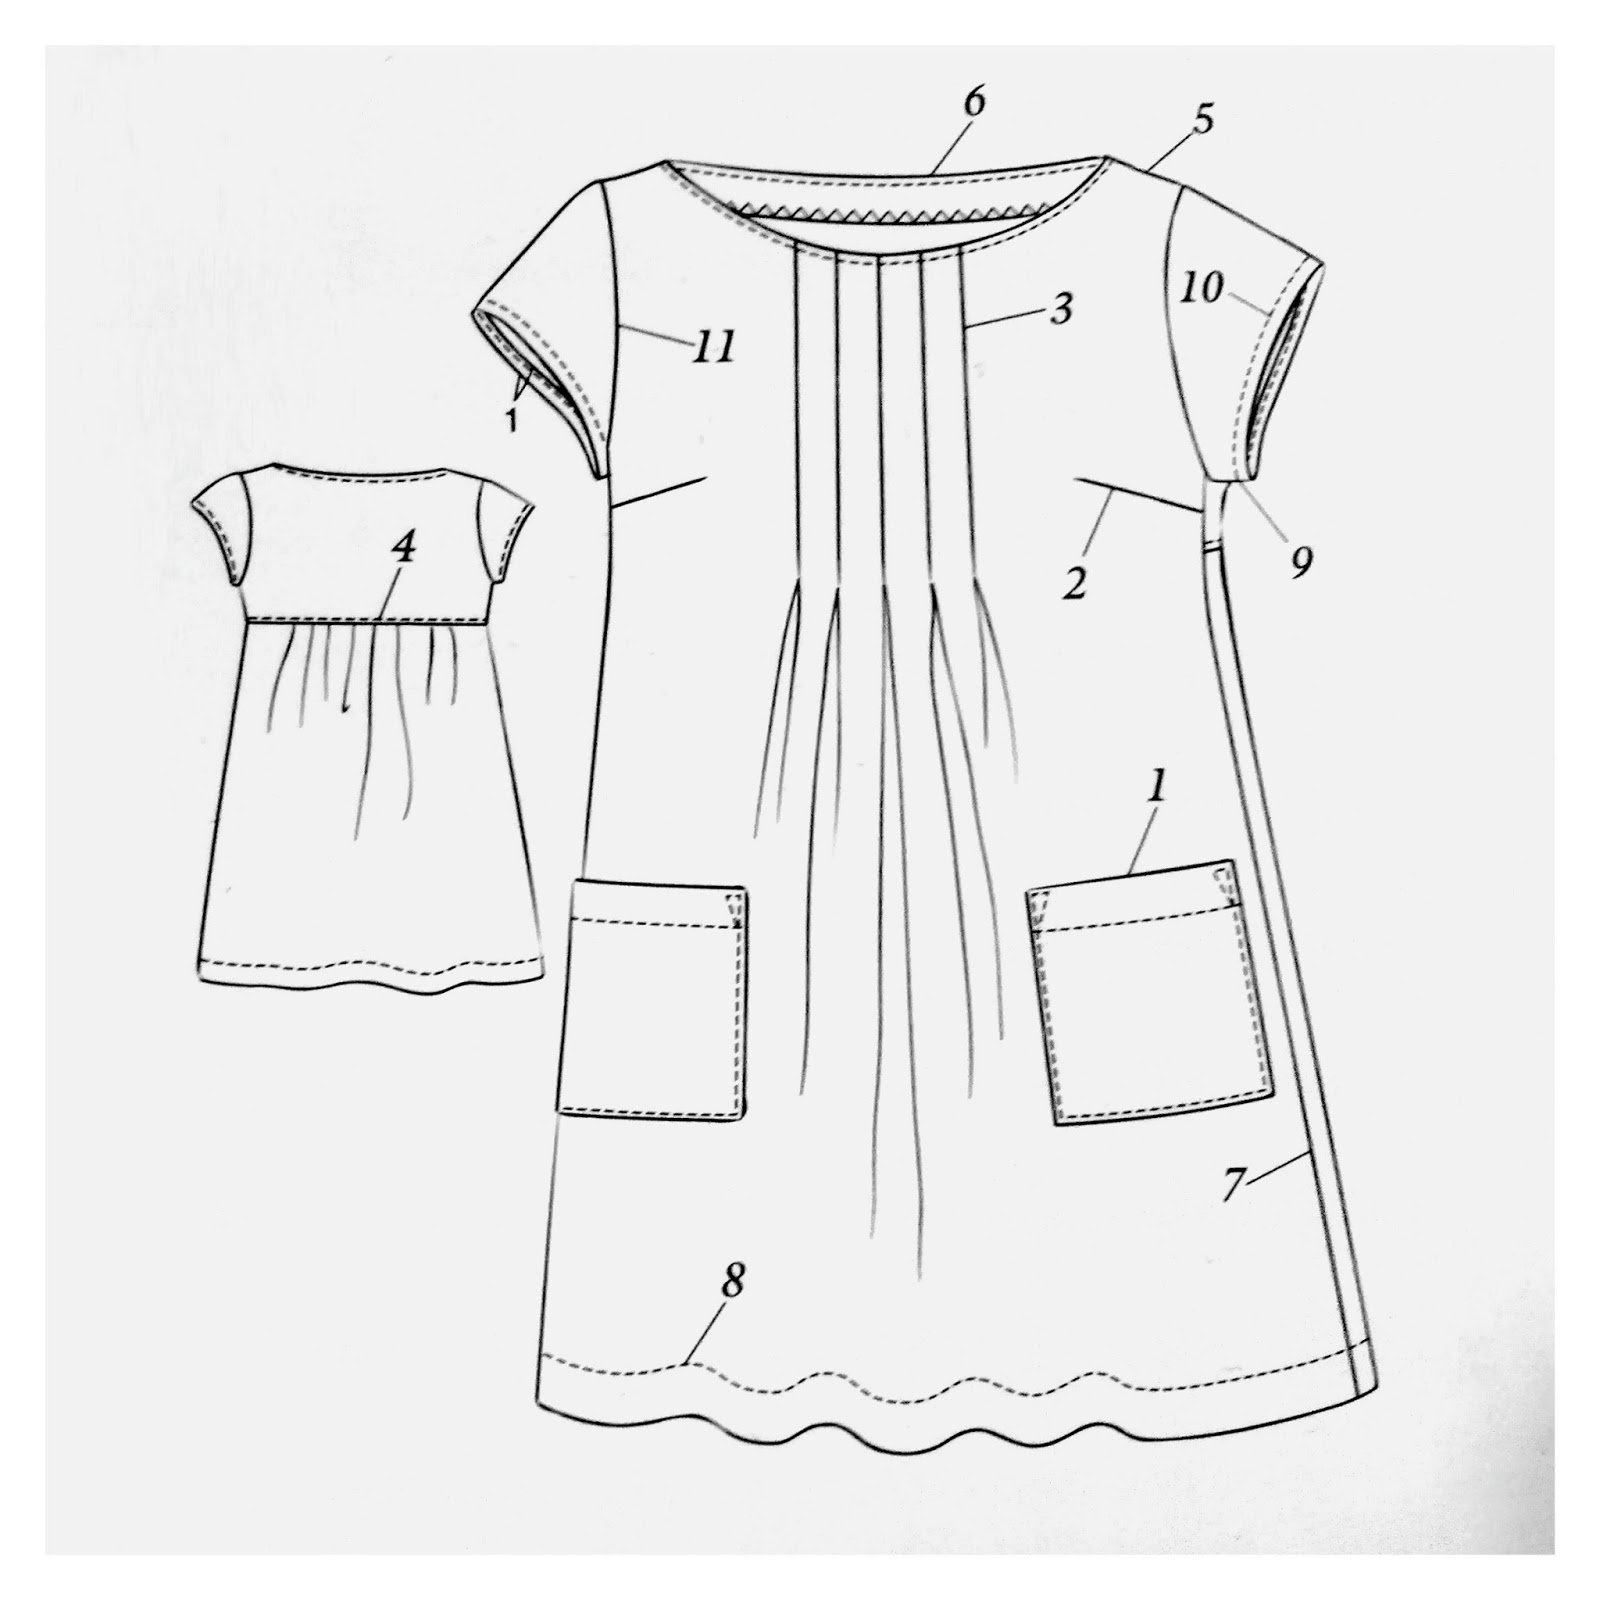 Dress with front pleats: Stylish Dress Book 1 illustration